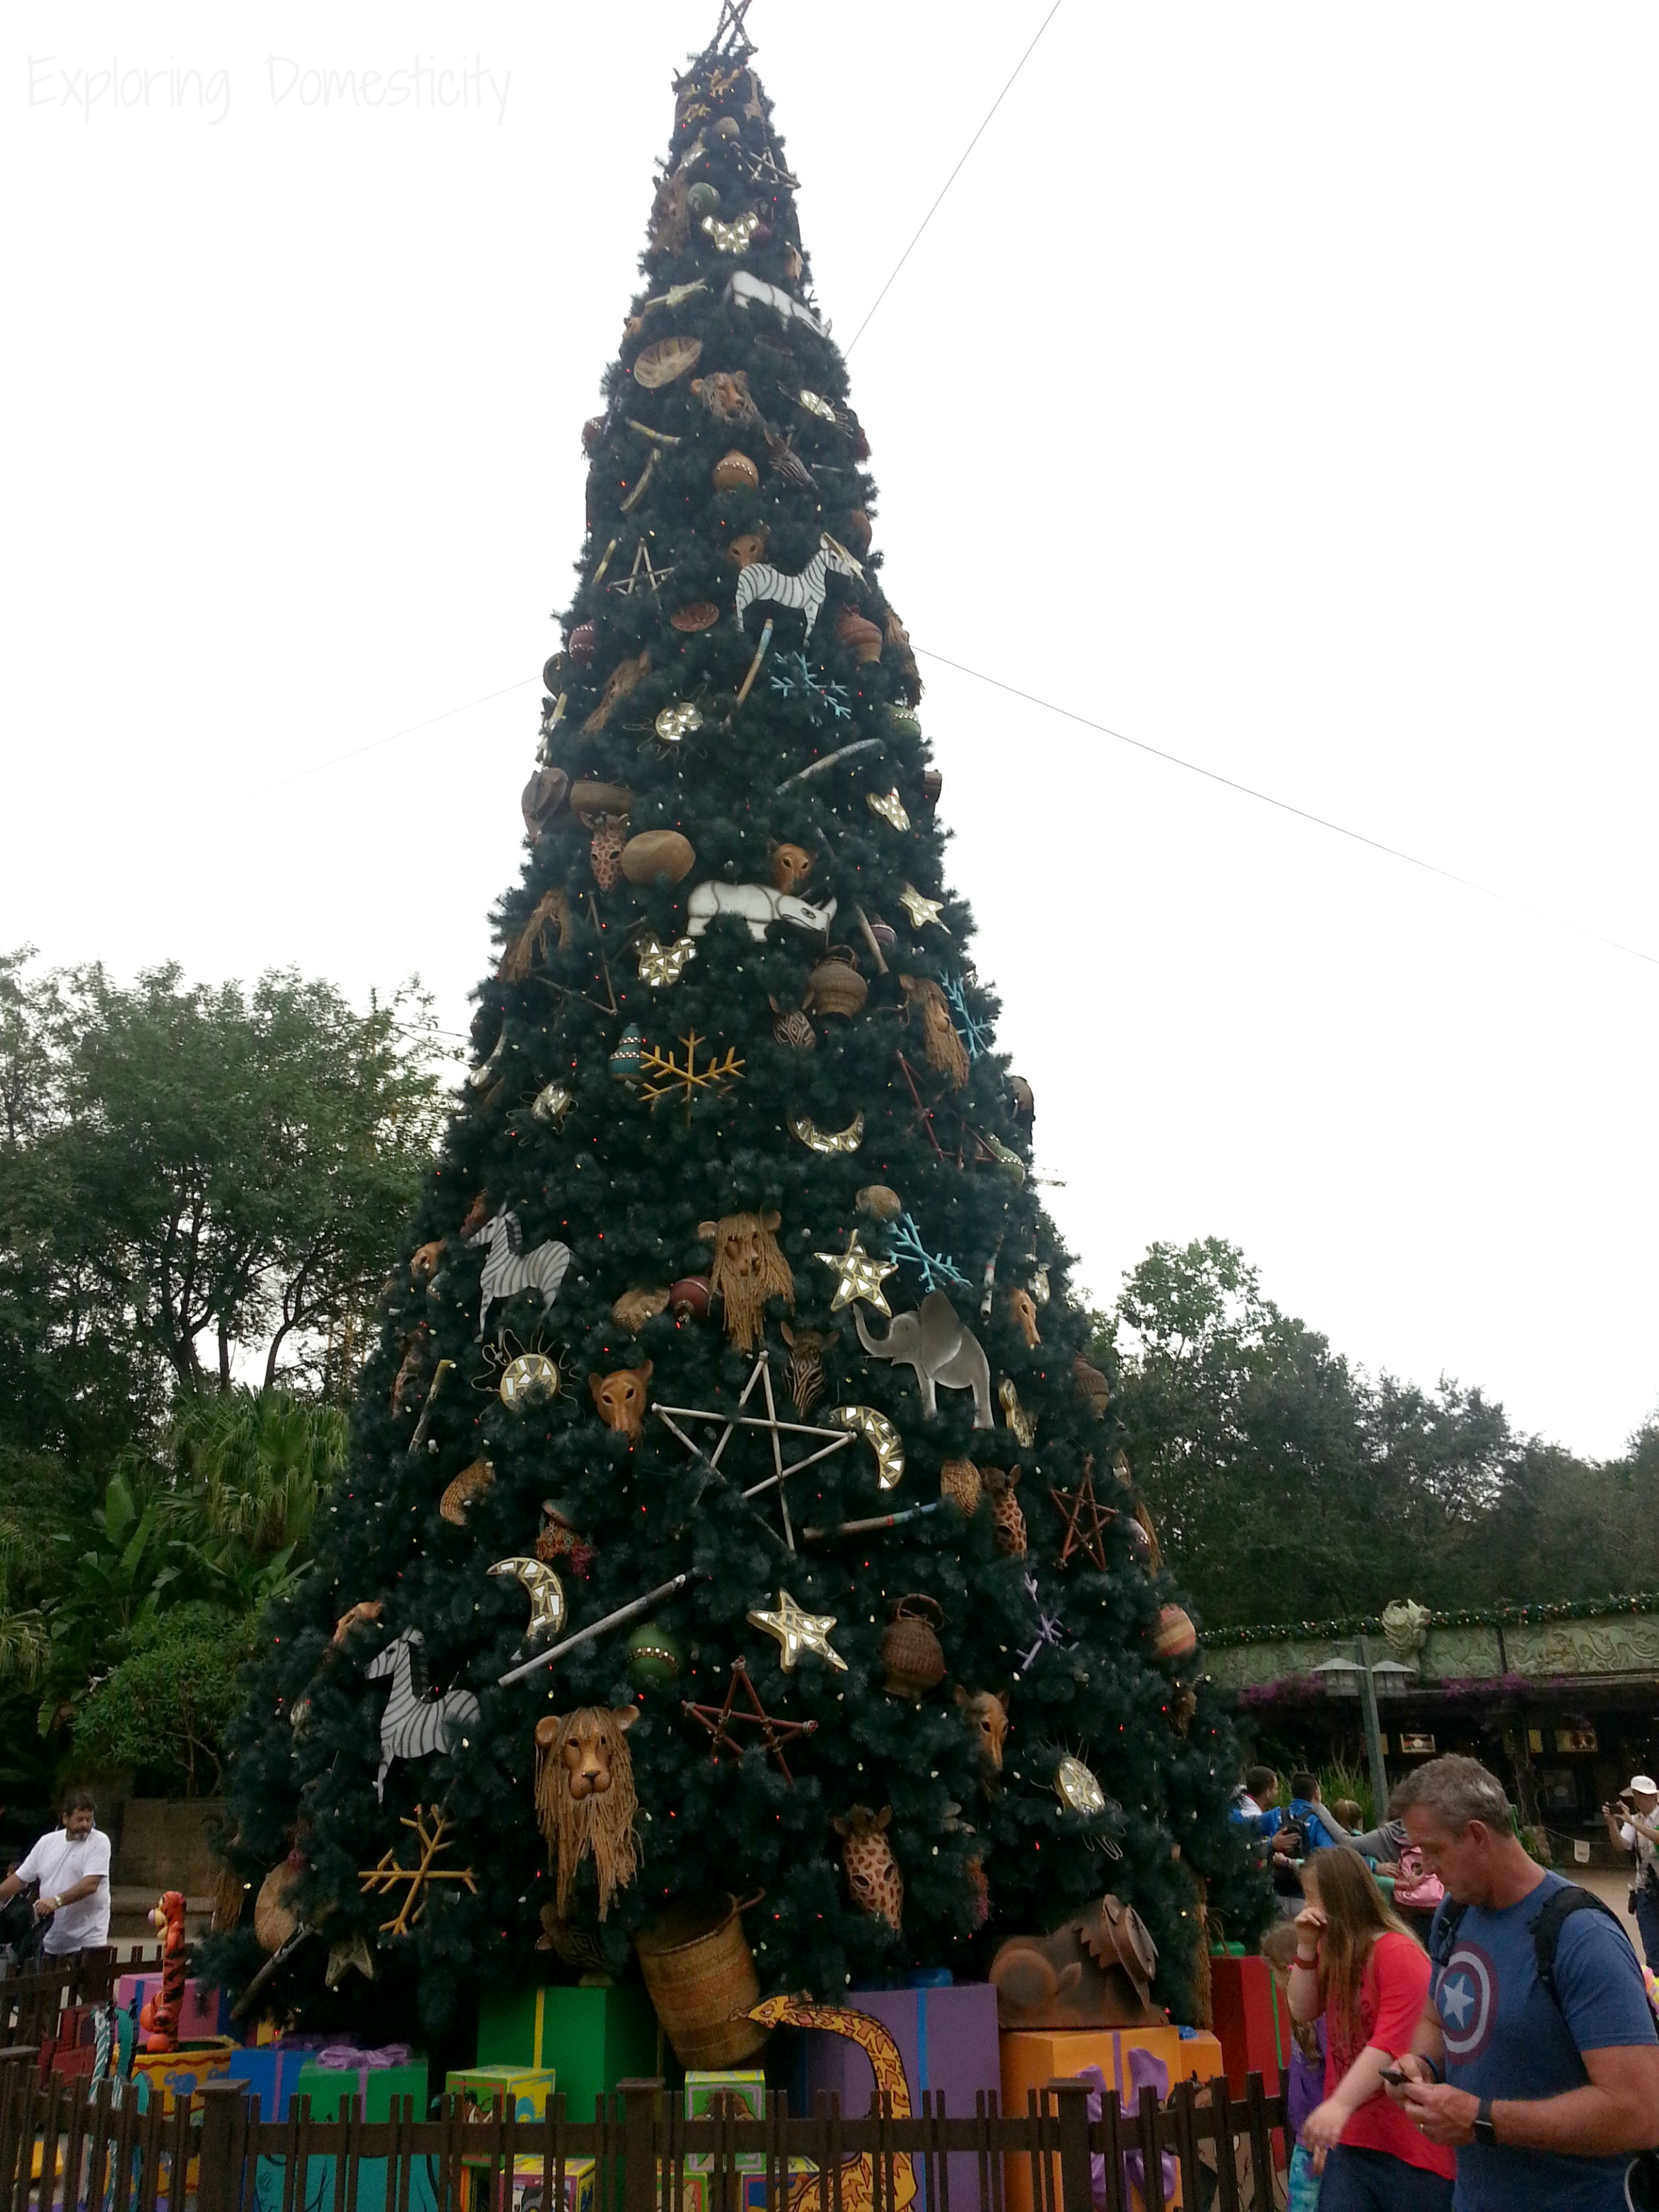 disney world during christmas holiday decorations at animal kingdom - Disney World Christmas Decorations 2017